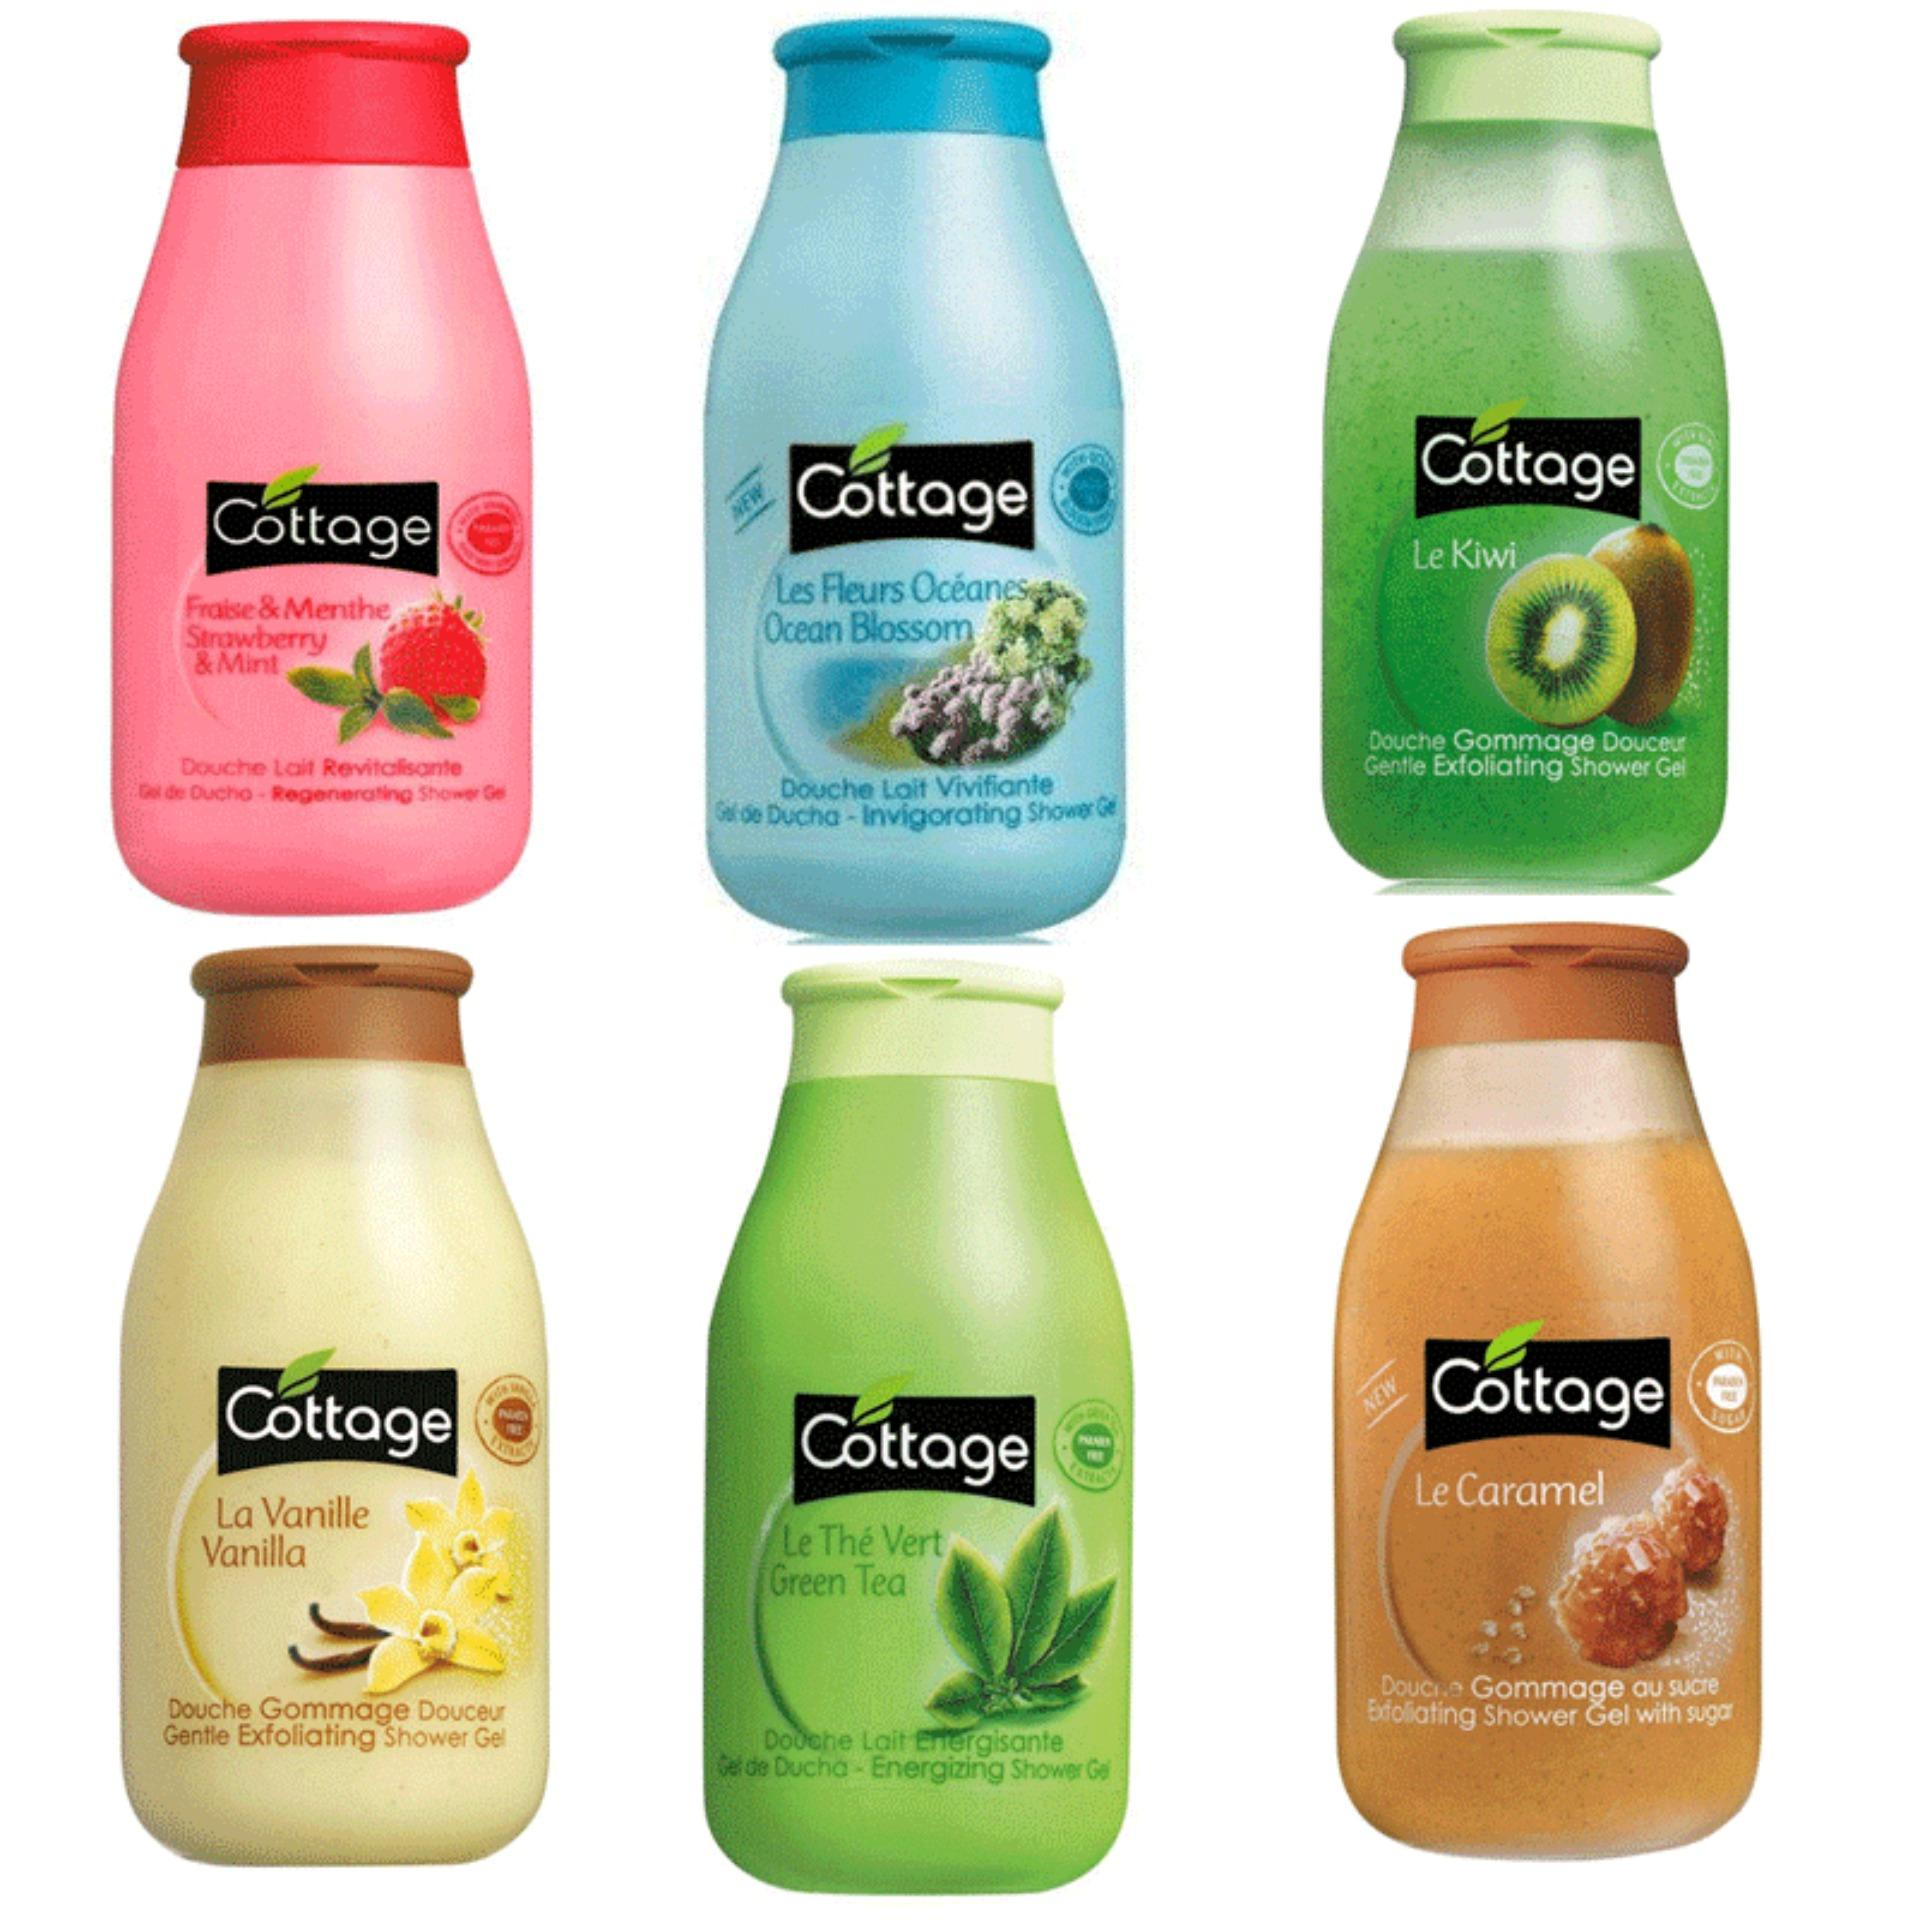 Palmolive Aroma Therapy Absolute Relax Shower Gel 750ml5 Daftar Sabun Mandi 750ml Reffil 450ml Source Vanilla 250ml Kulit Harum